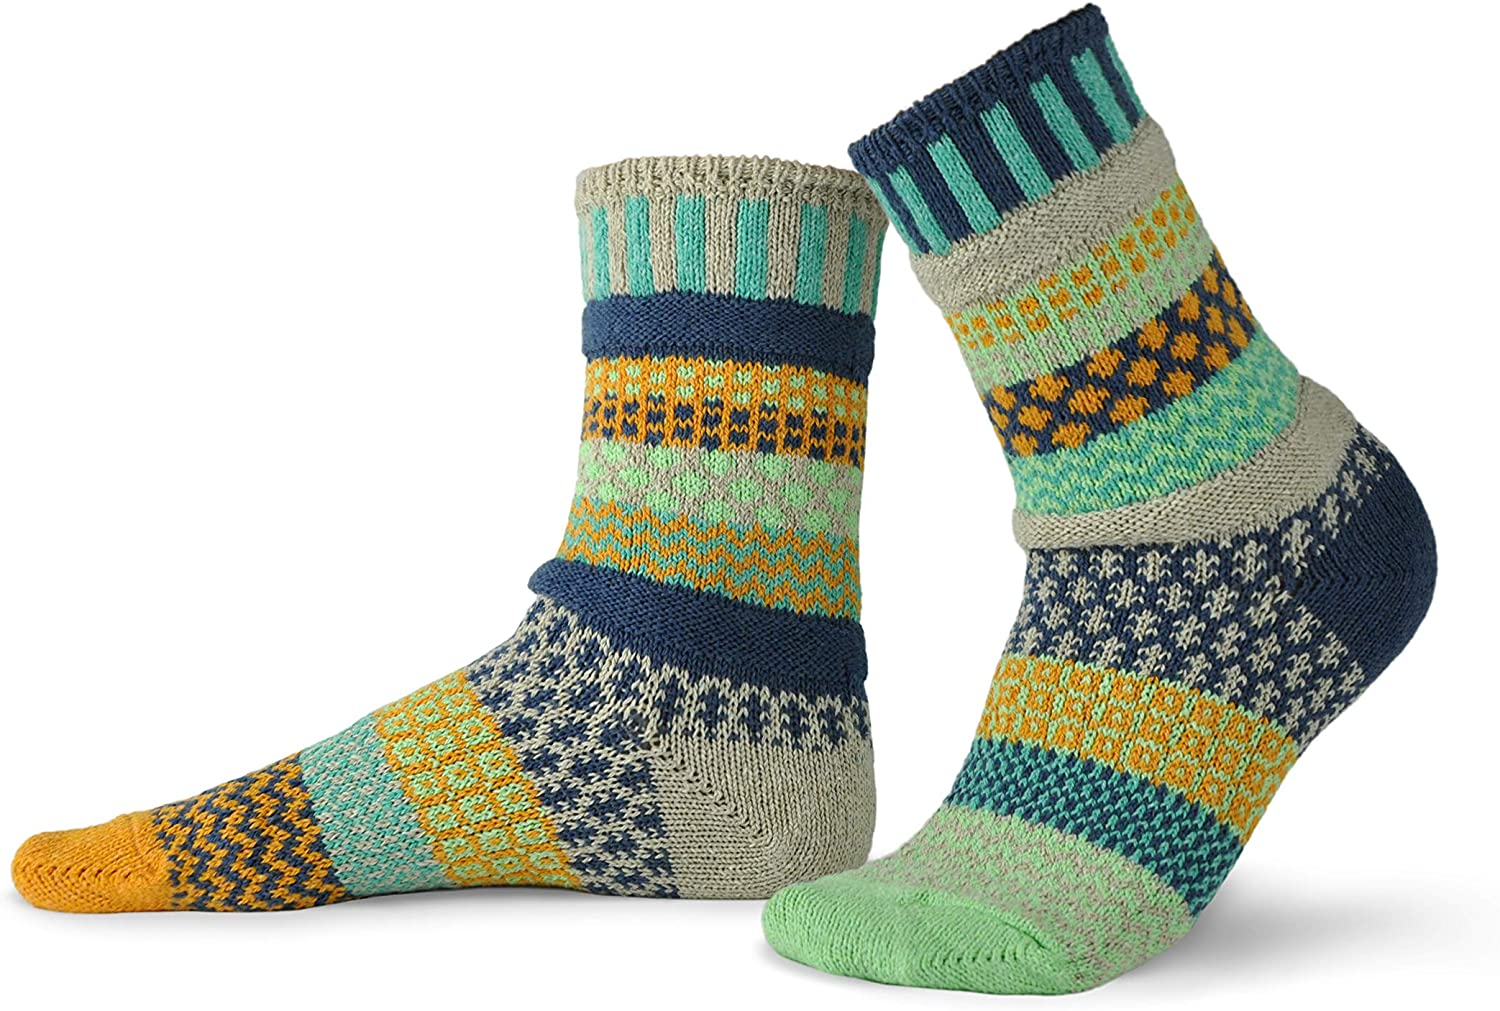 Solmate Socks - Mismatched Crew Socks; Made in USA; Aloe Large